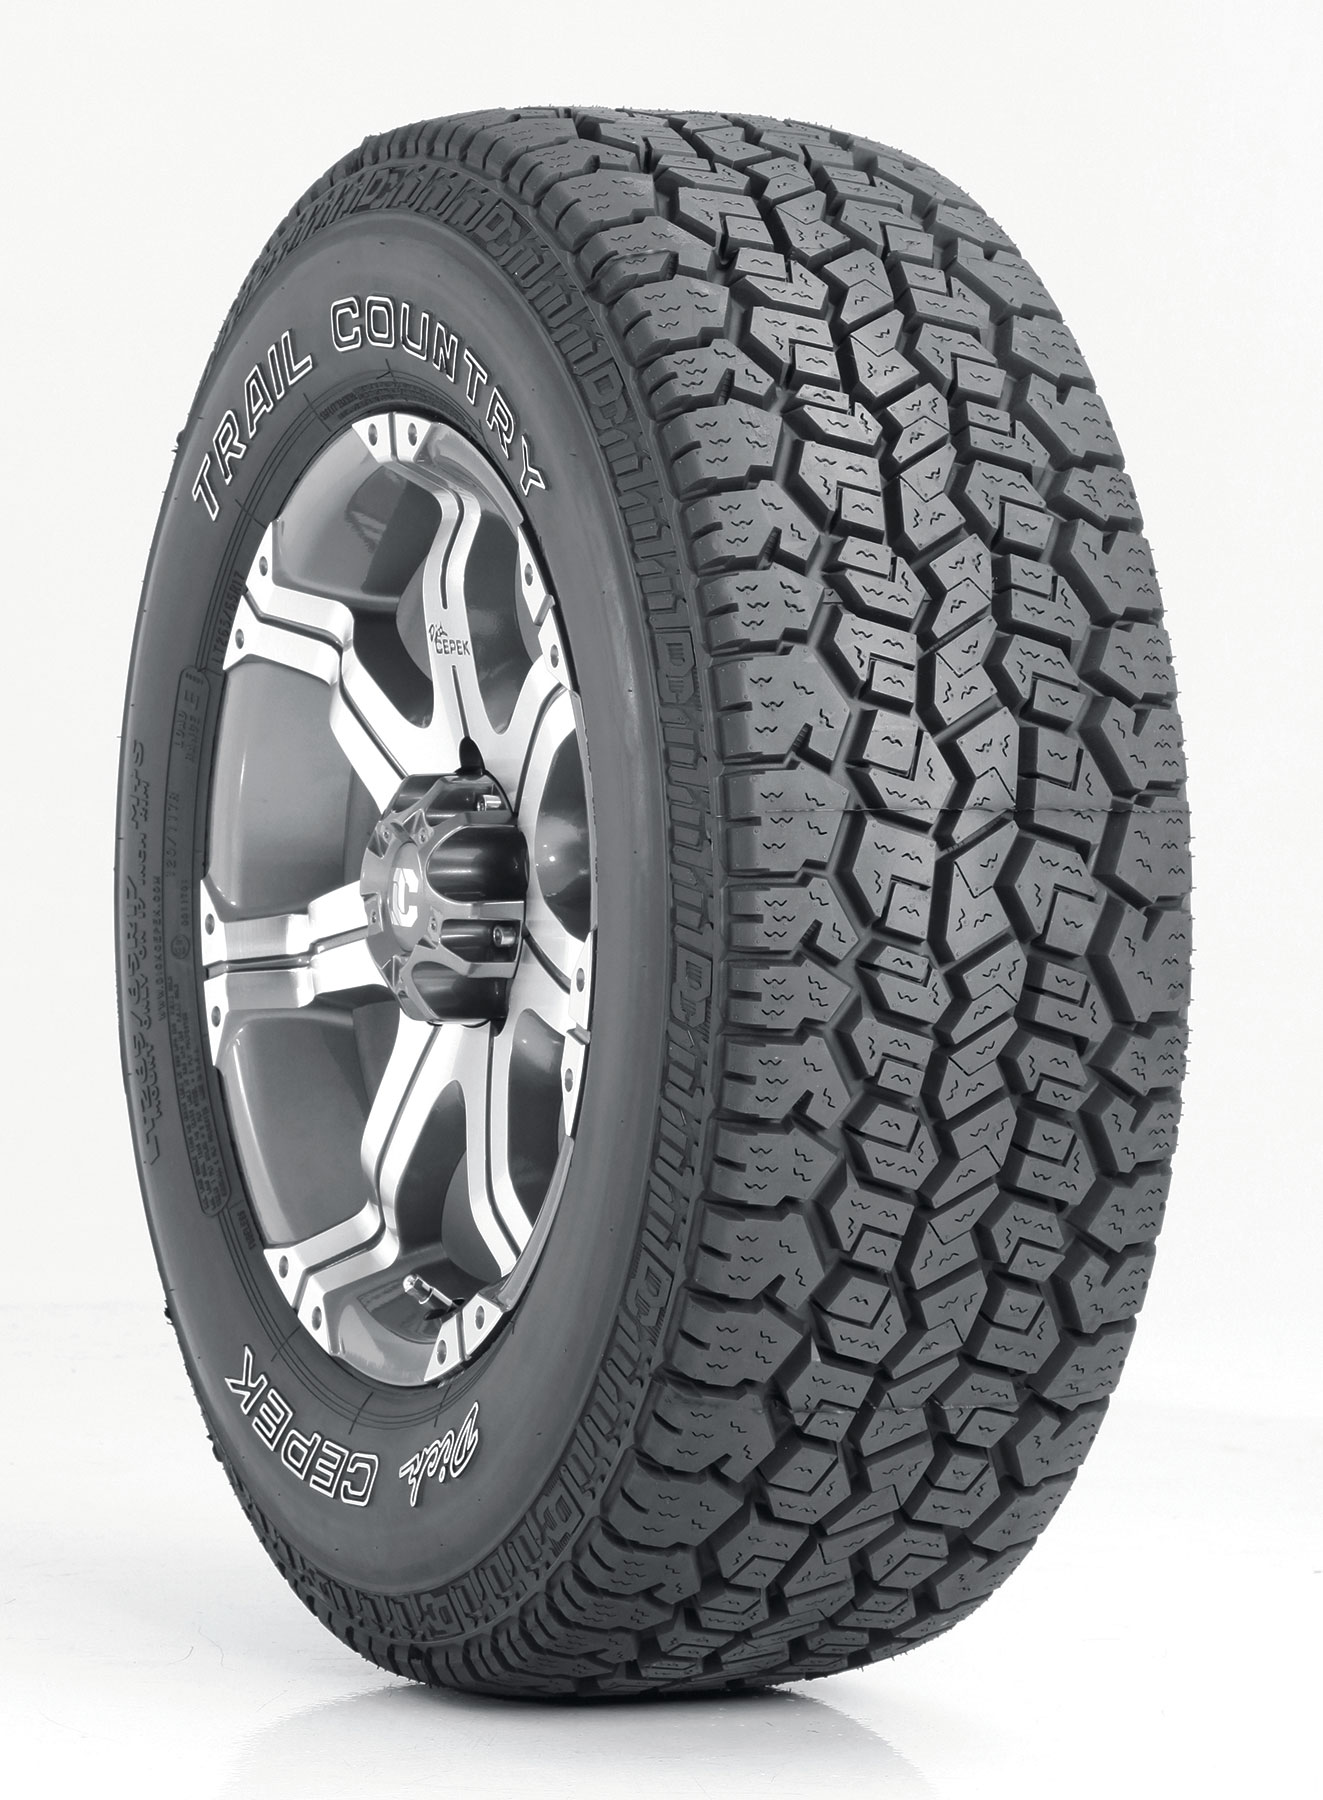 Cooper Tire Dealers >> DICK CEPEK® TIRES & WHEELS INTRODUCES NEW TRAIL COUNTRY ...